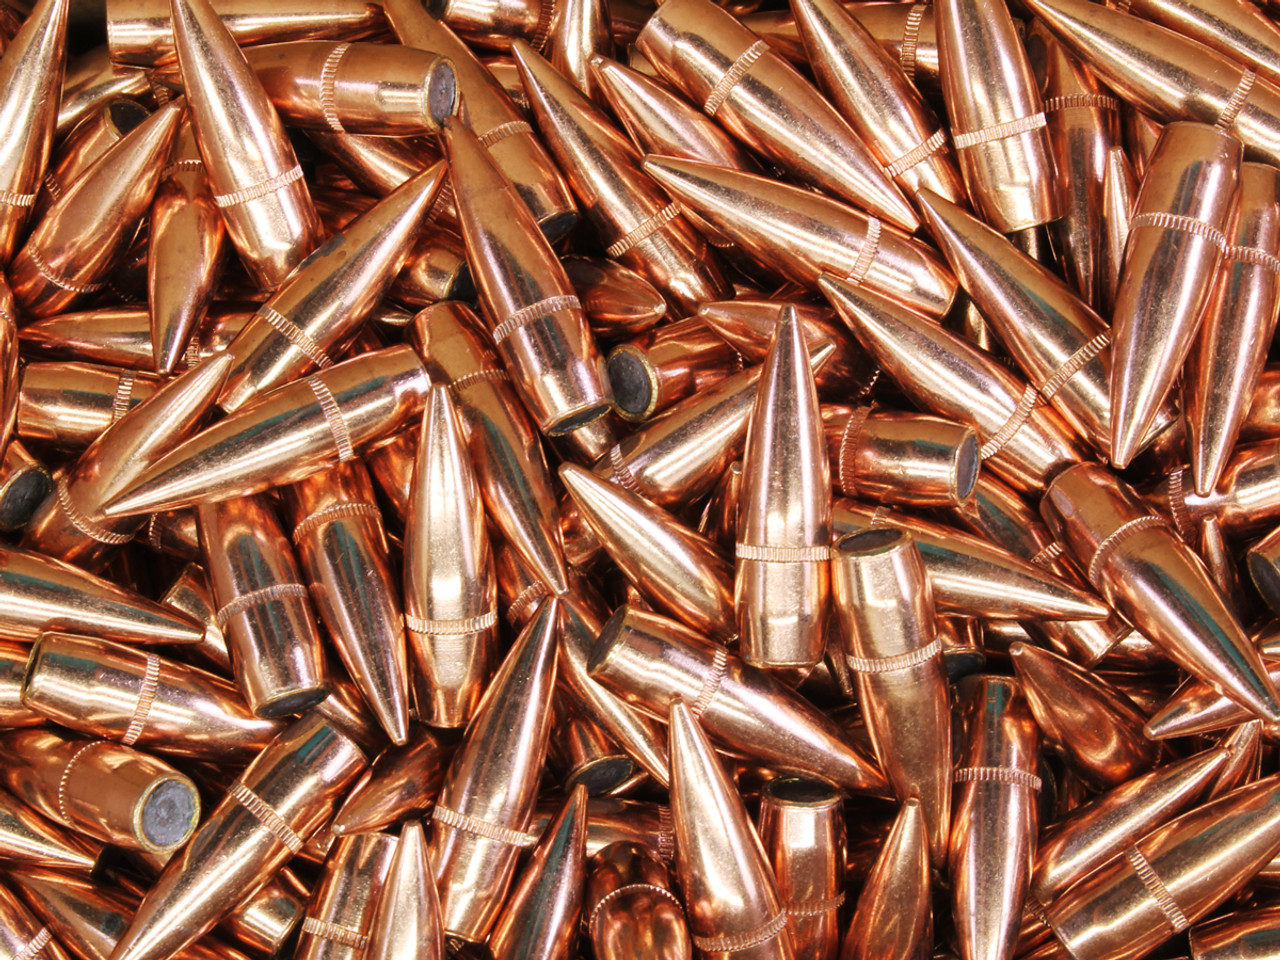 30 Caliber BULLETS 1500cnt  ( 308/30 06) Armscor 147 Grain FMJ-BT - 1500  Count *FREE USPS SHIPPING